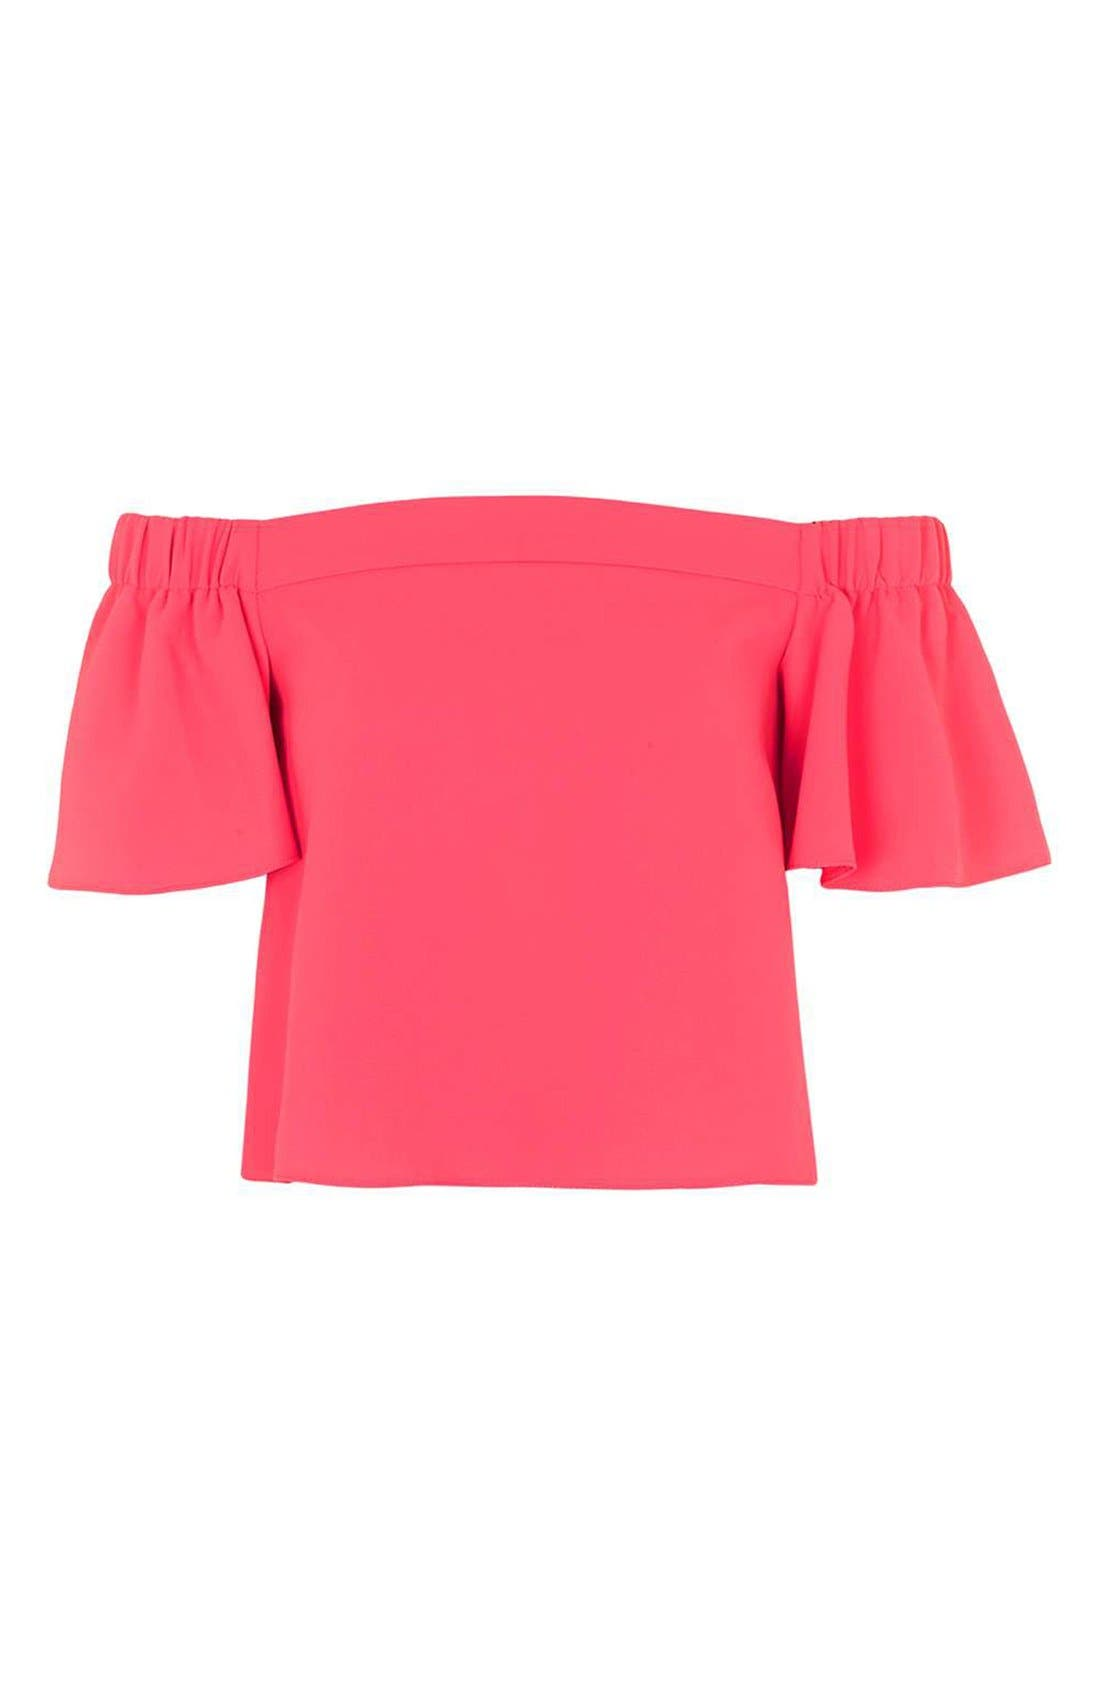 Alternate Image 4  - Topshop 'Livi' Off the Shoulder Top (Regular & Petite)